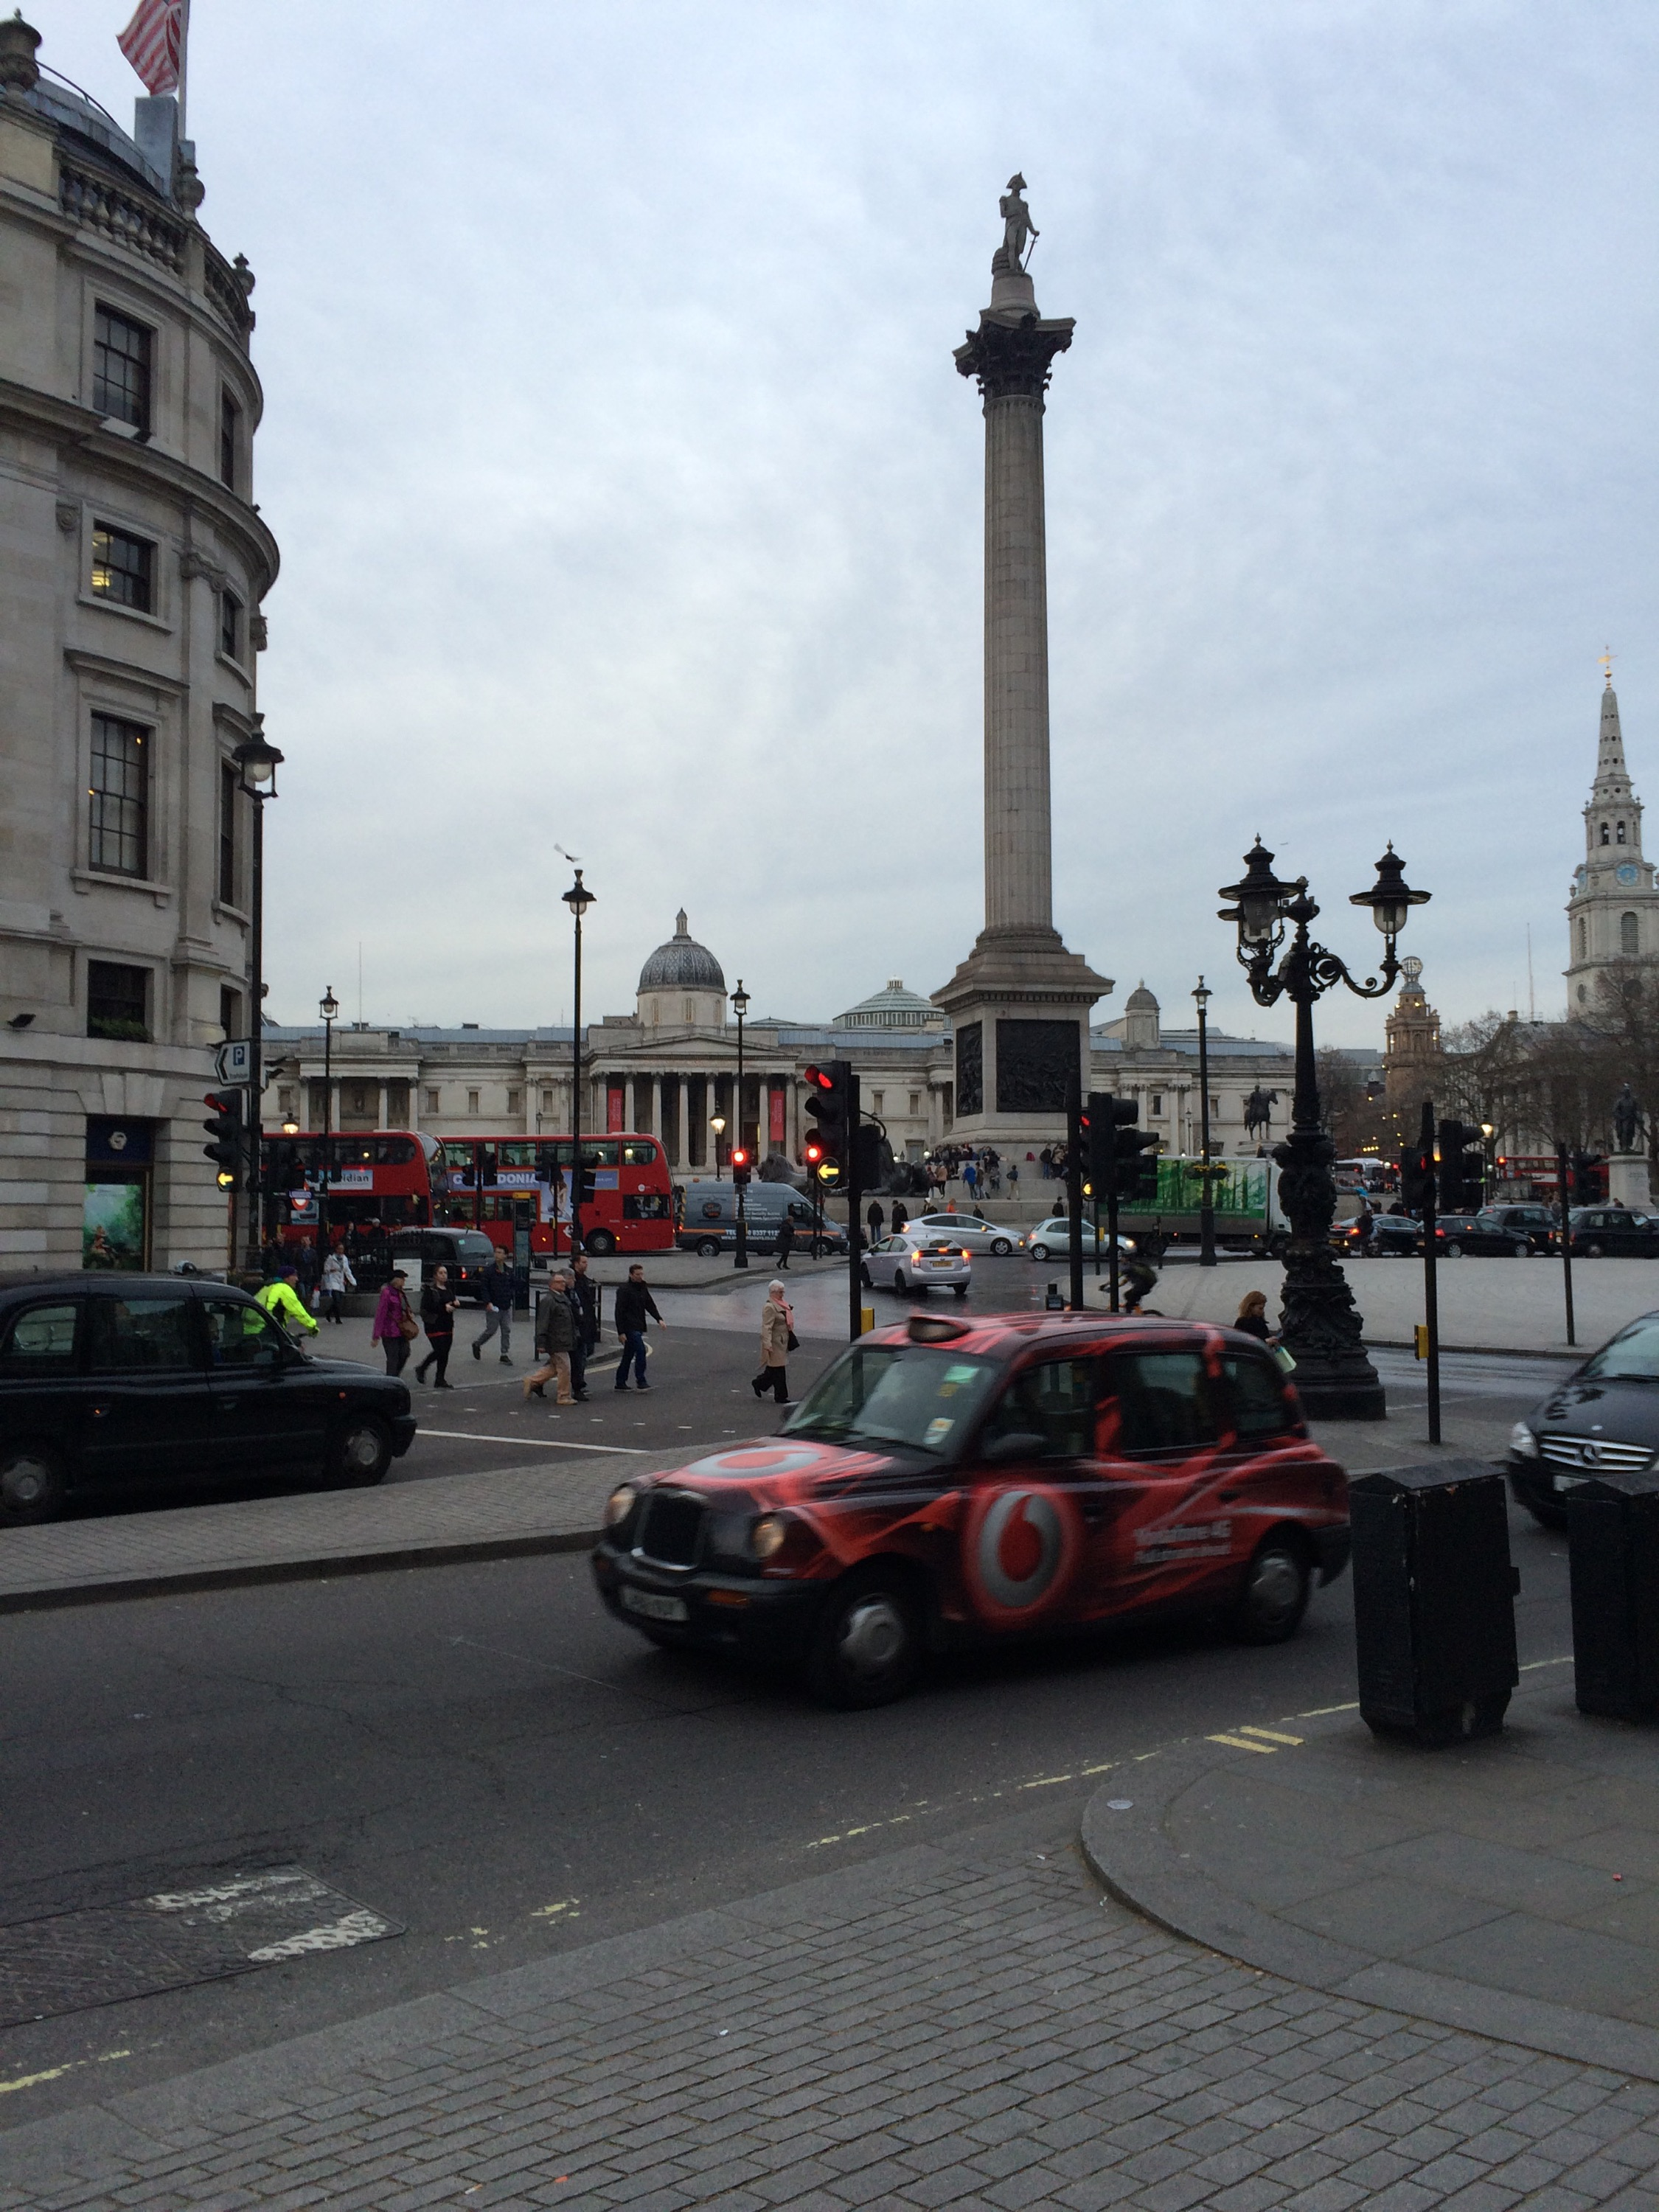 London, Trafalgar Square, black taxi, double decker bus